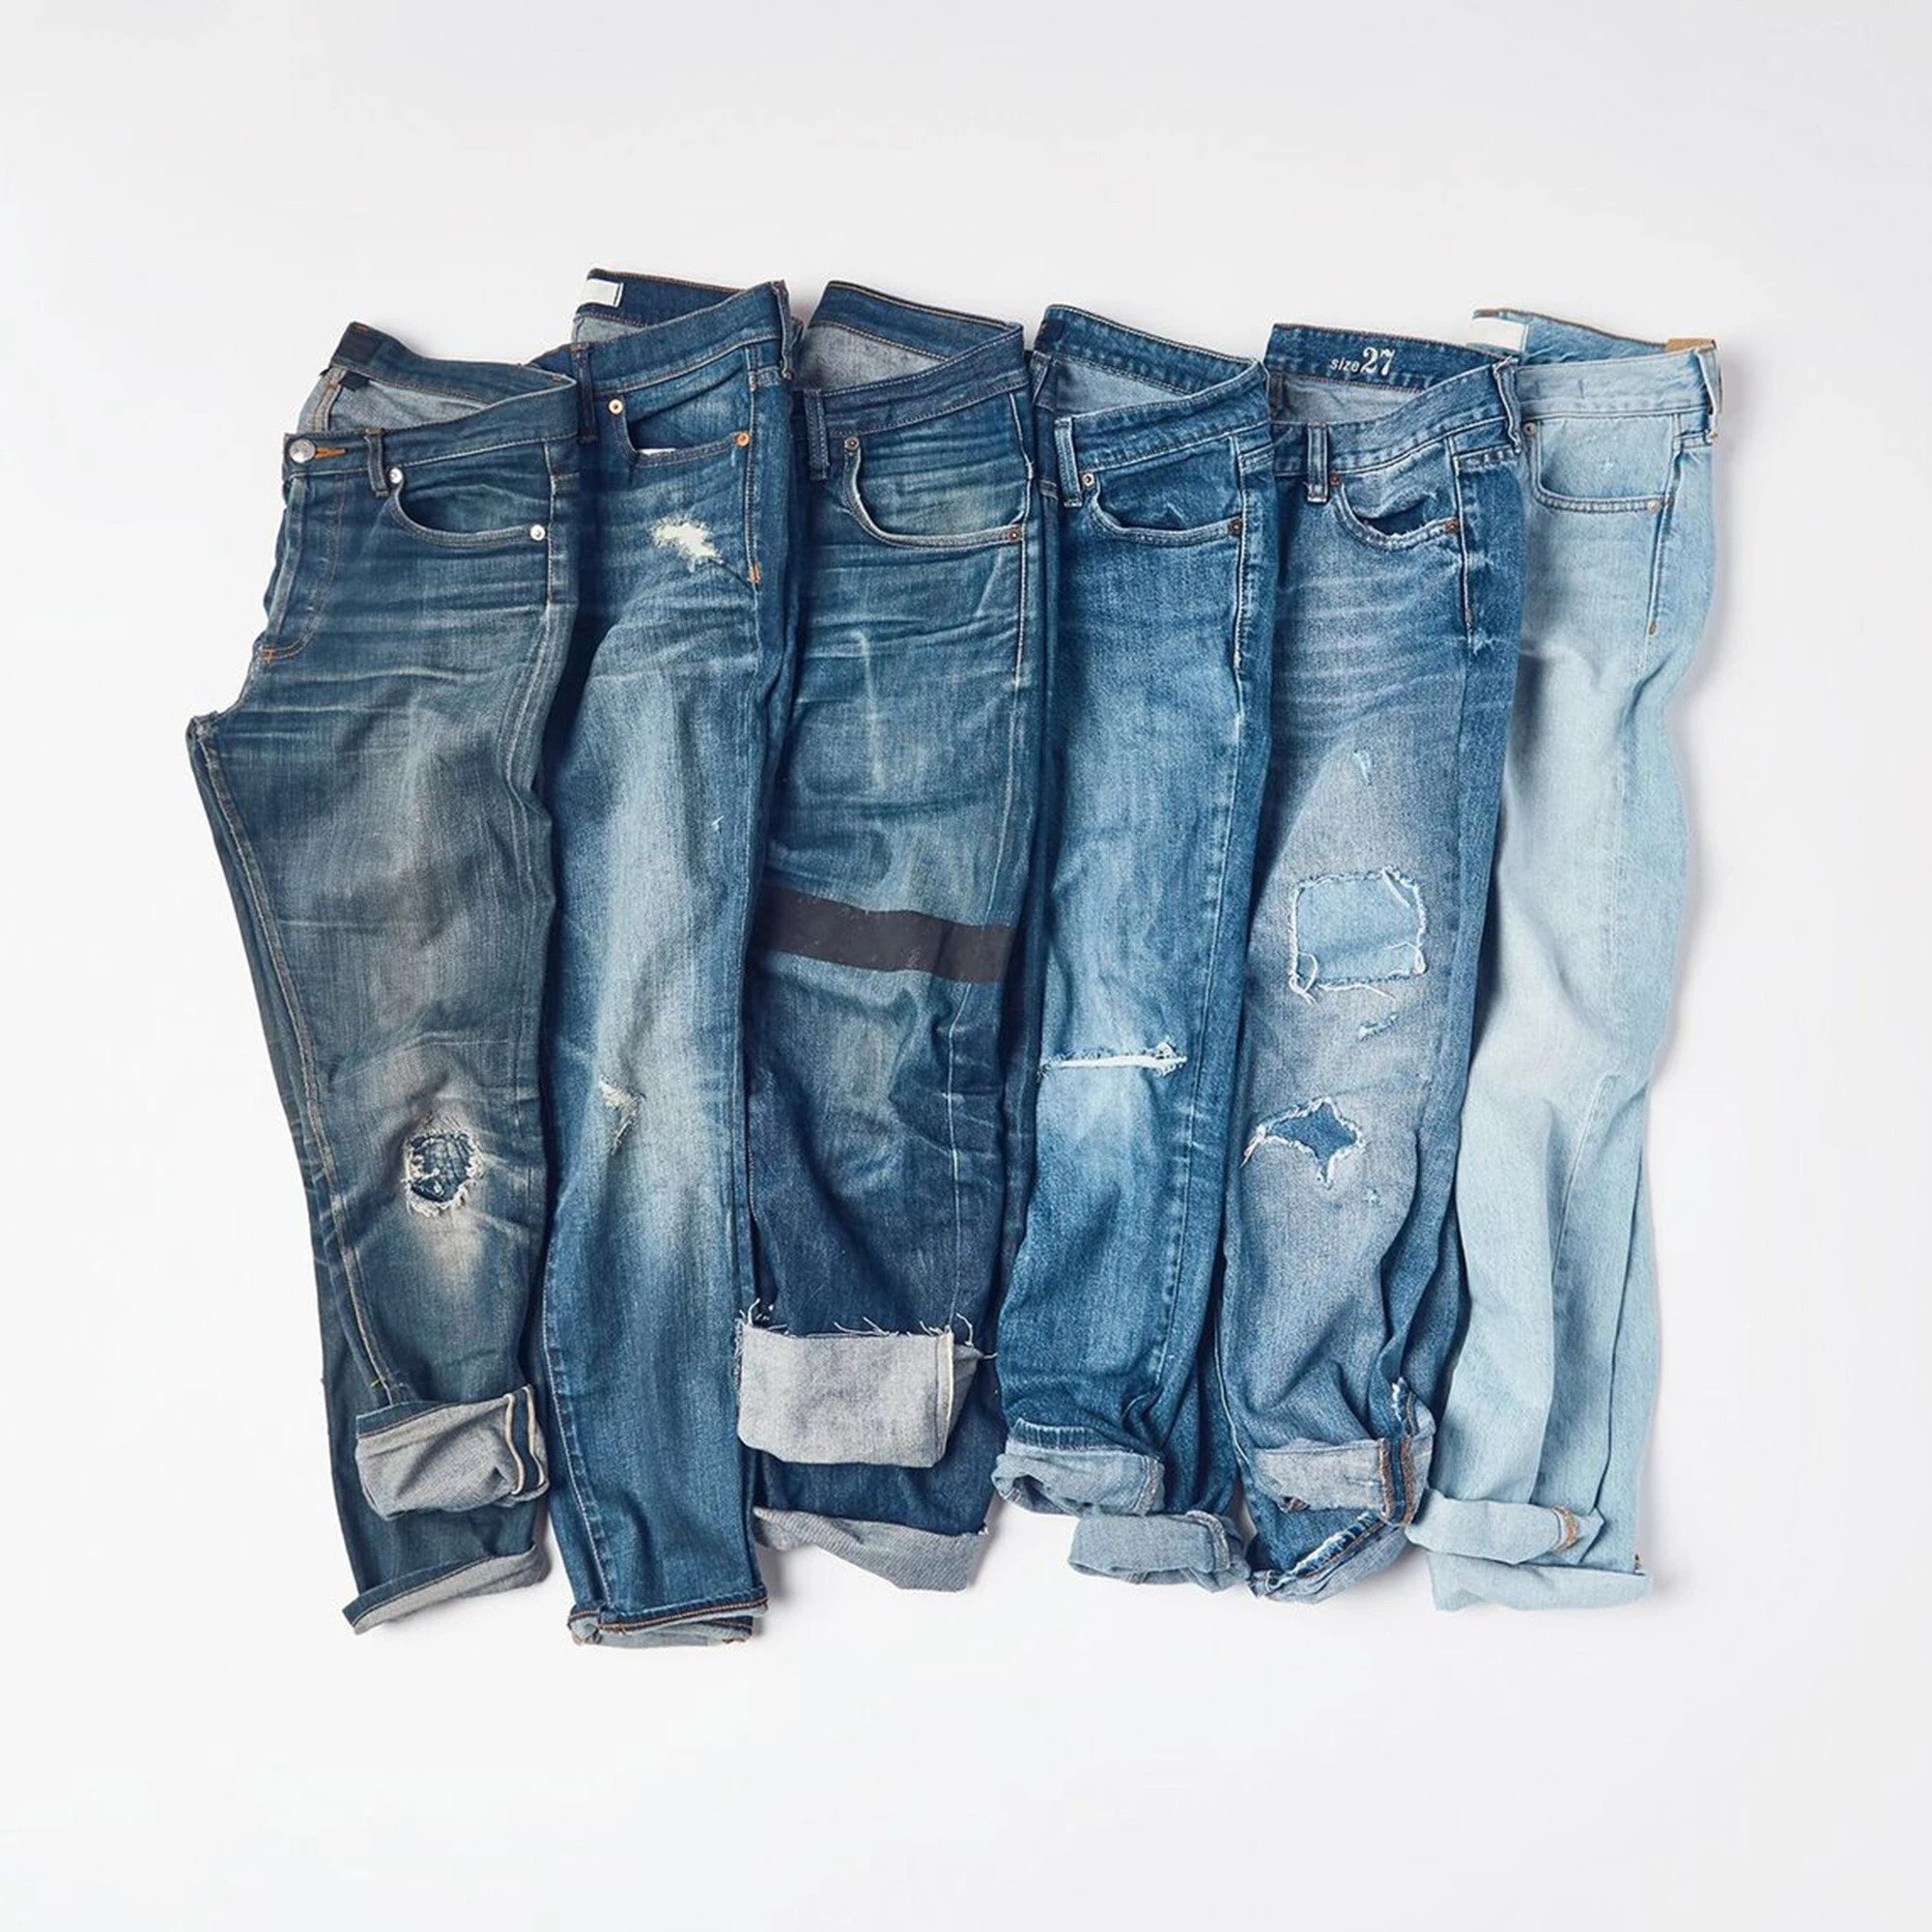 Blue Jeans: A leading Choice